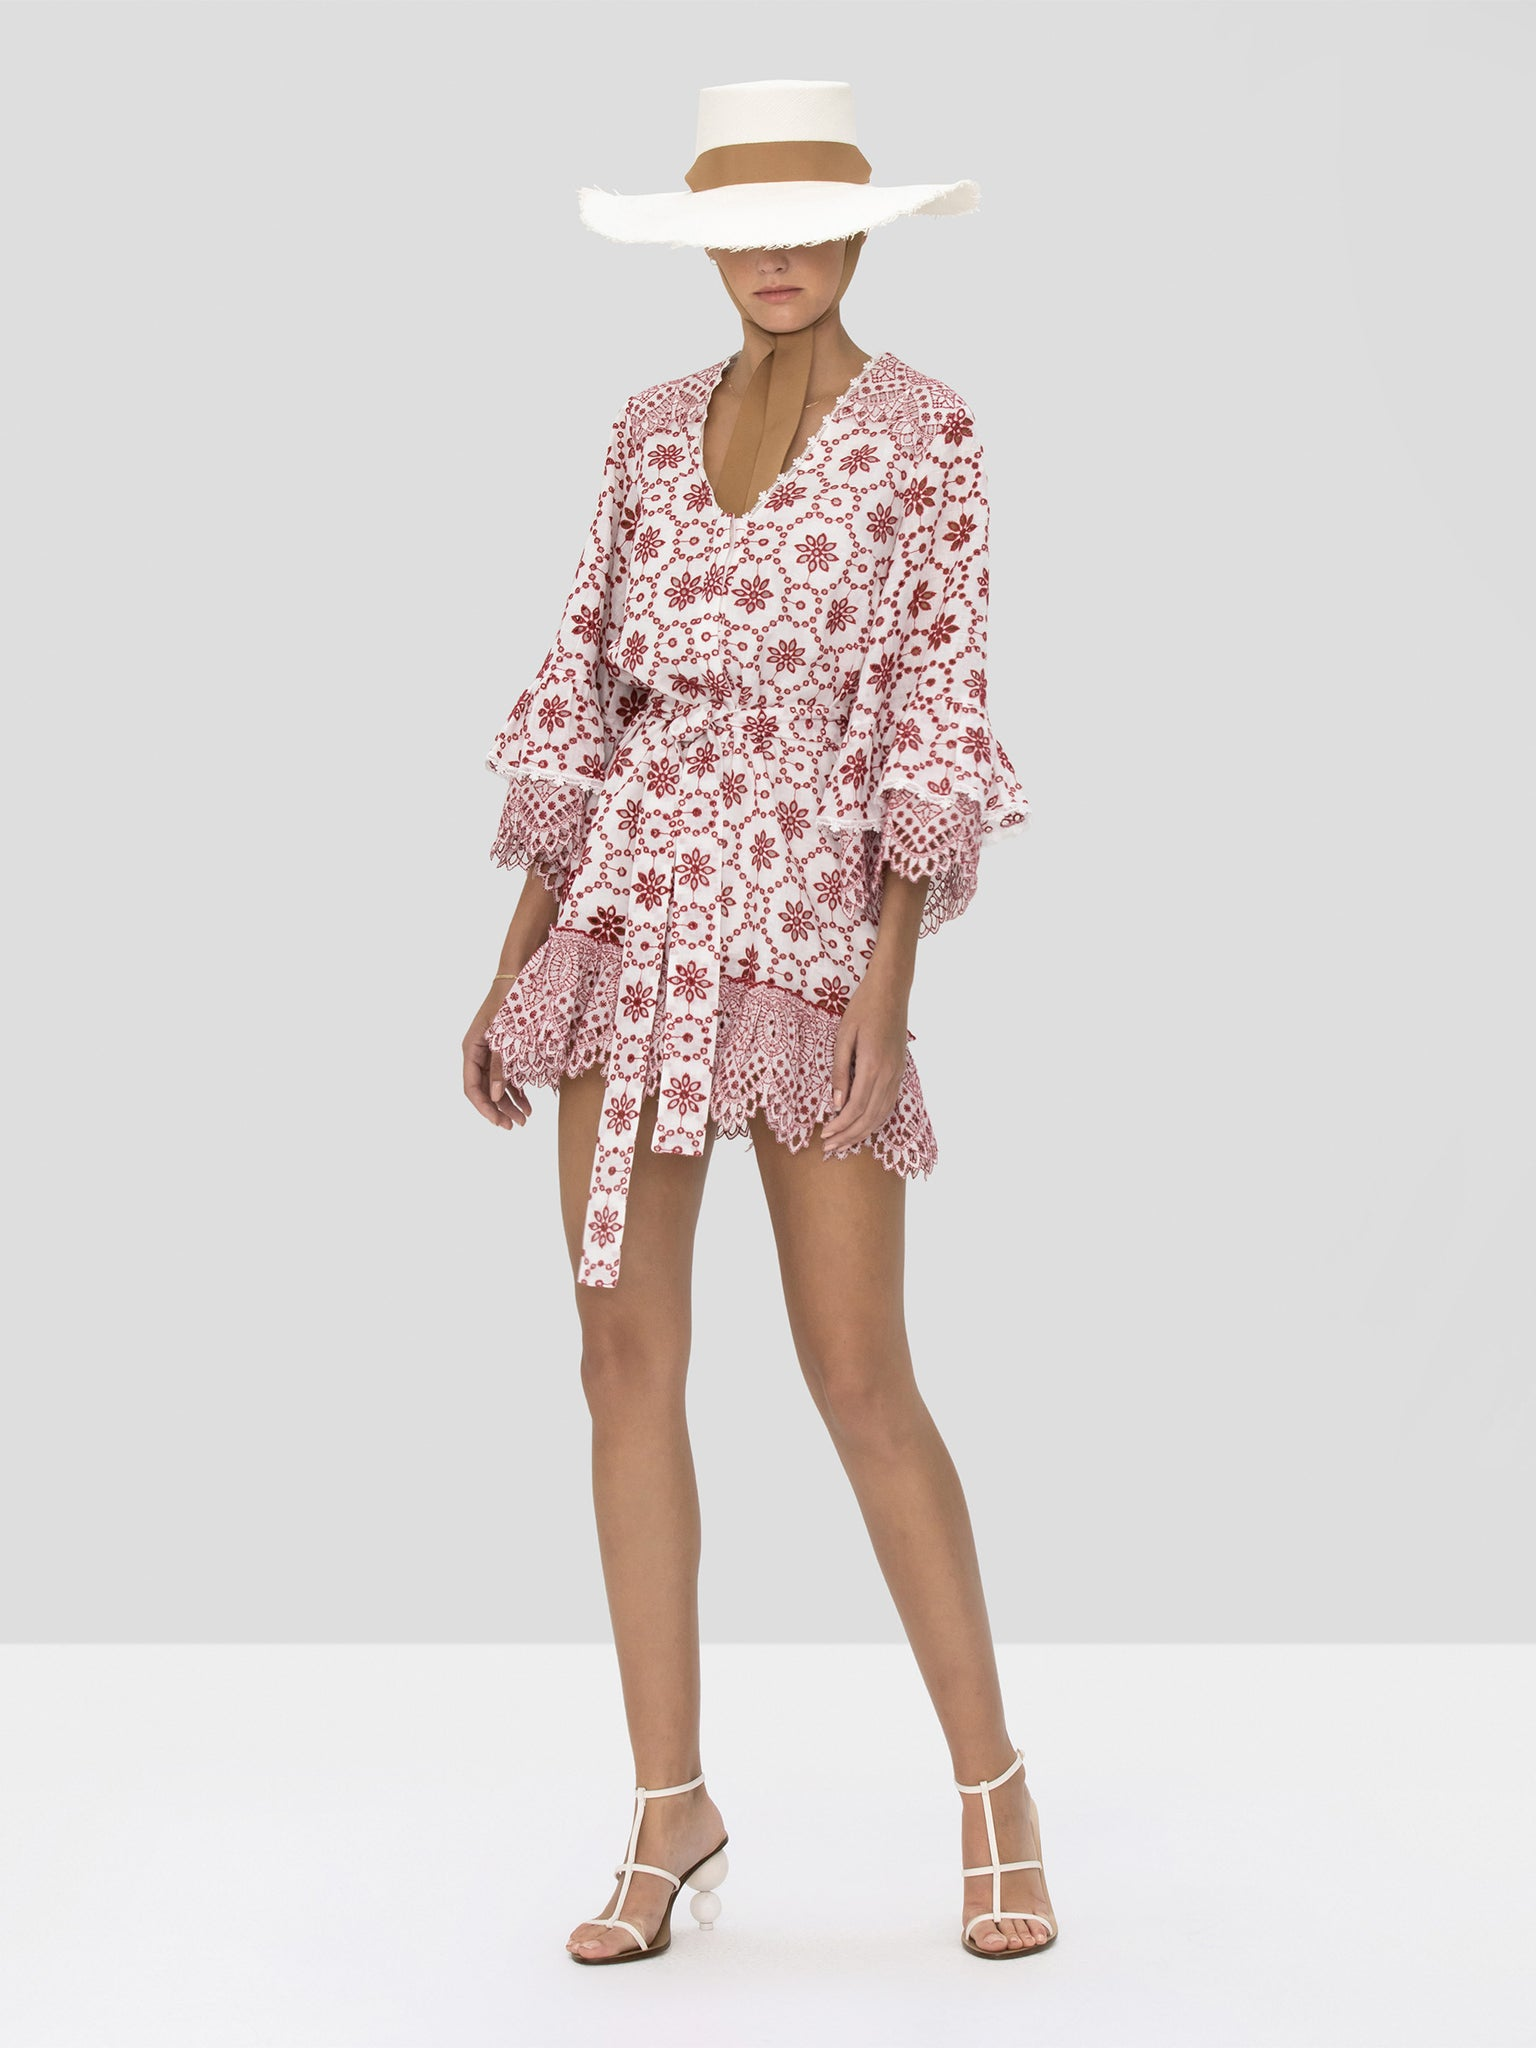 Alexis Gladys Dress in Berry Eyelet Embroidery from Spring Summer 2020